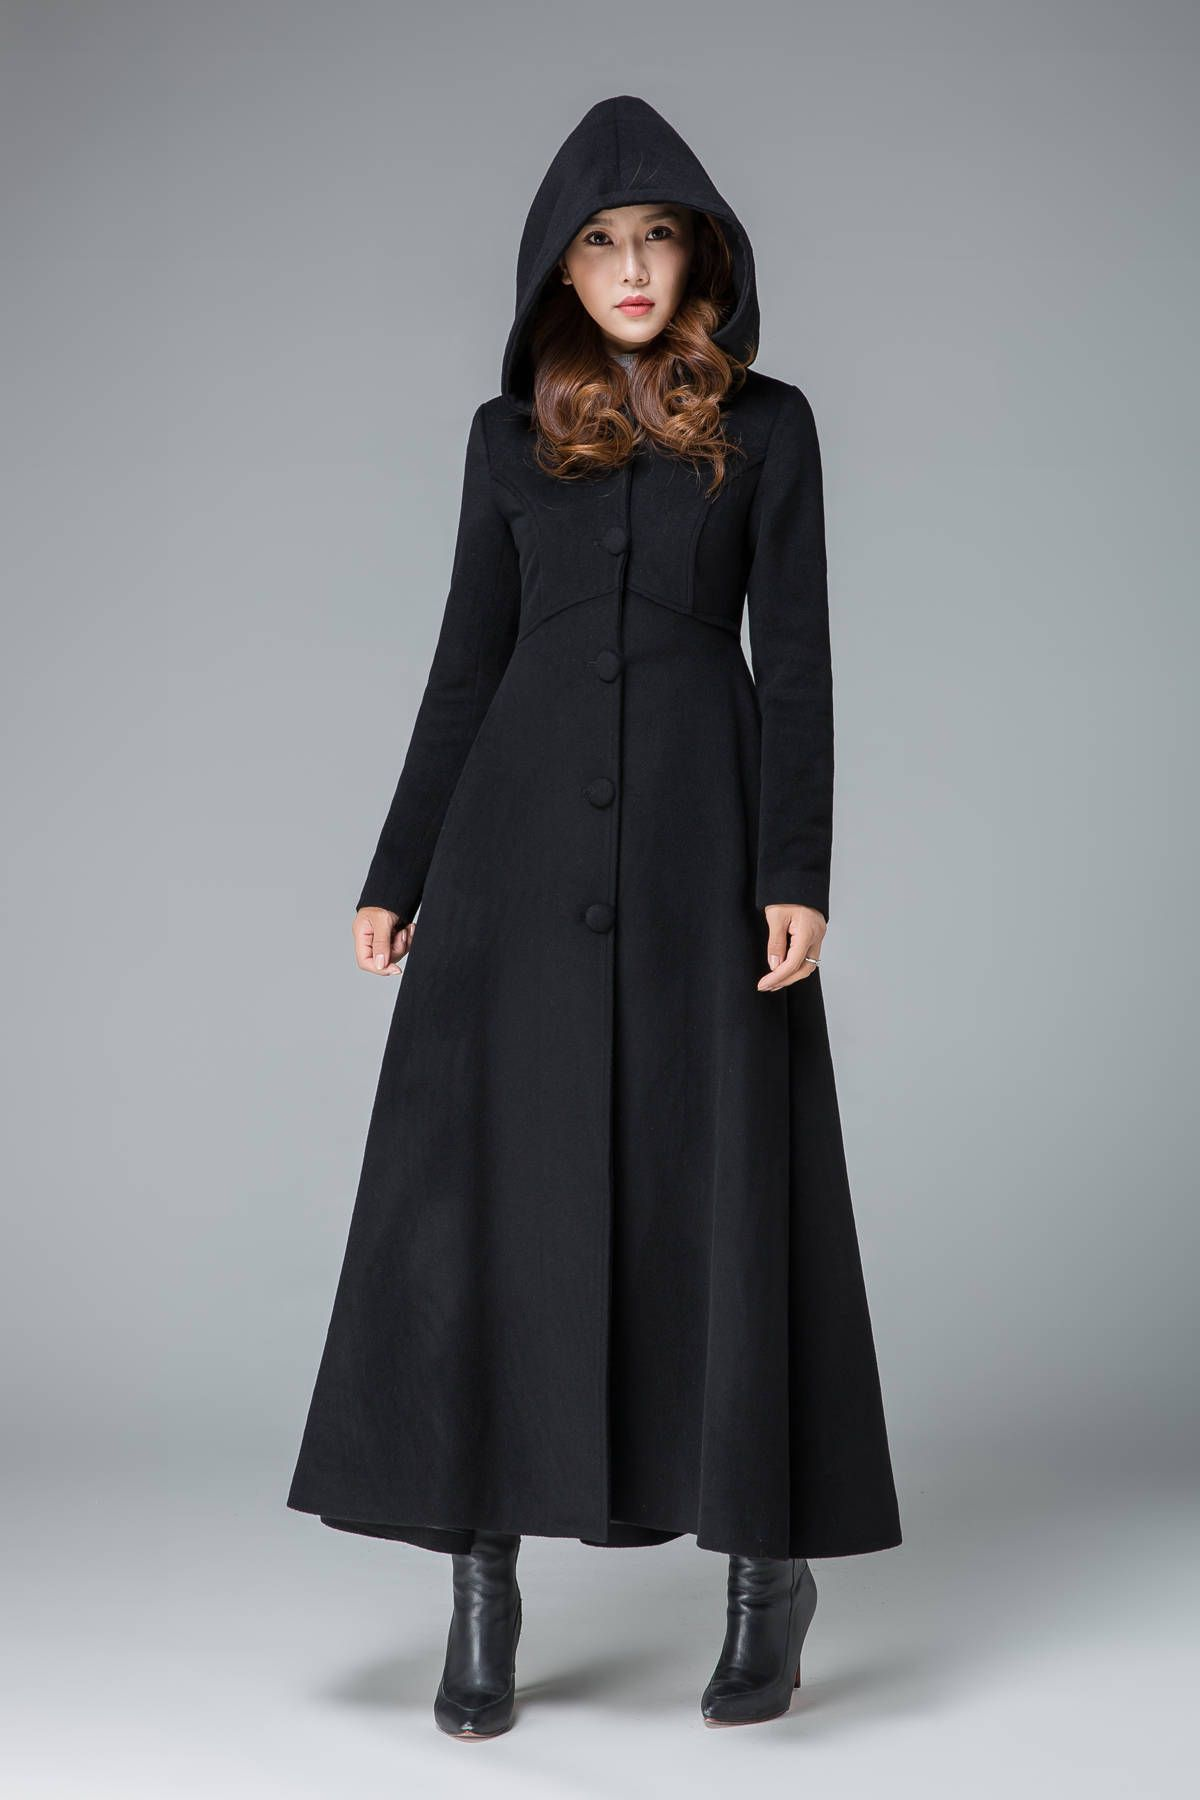 591856c164c image 0 Trench Coat Outfit